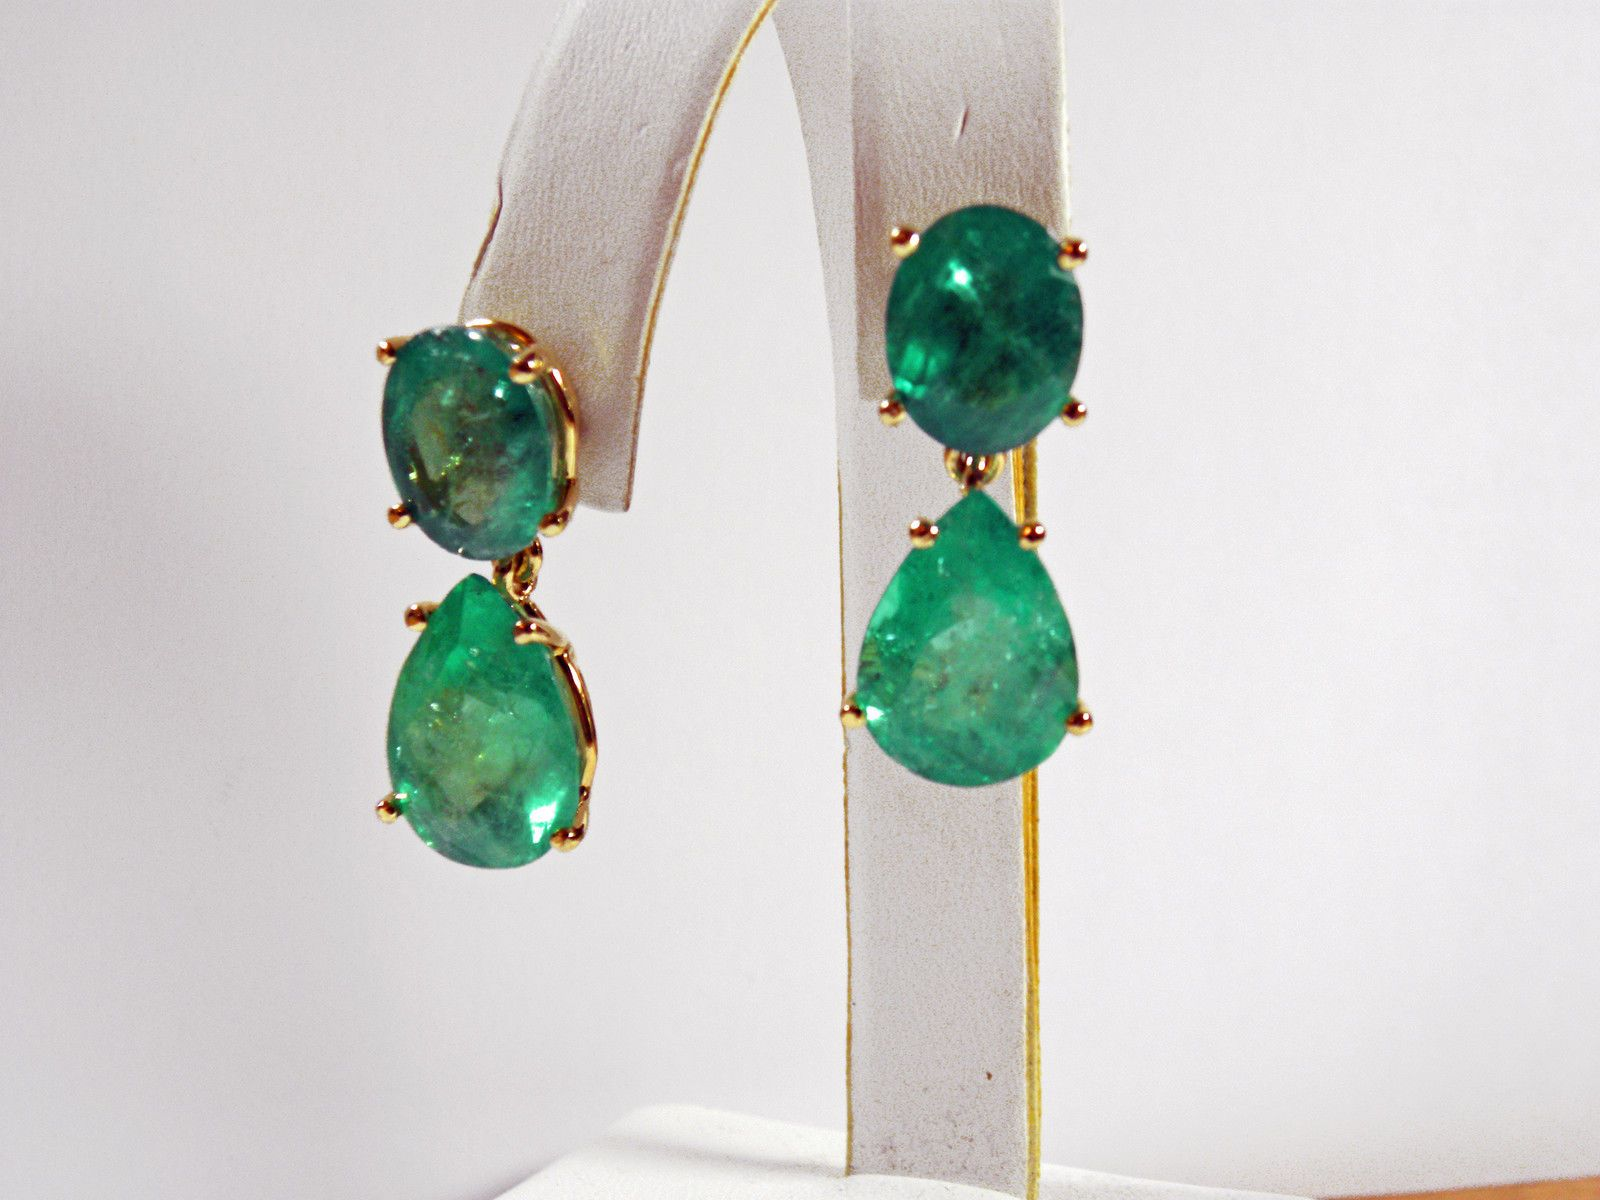 pin gold bitsy each itsy the yellow doubles ears stud earrings plating that set emerald are in two double natural and stones sensitive with features little cutest